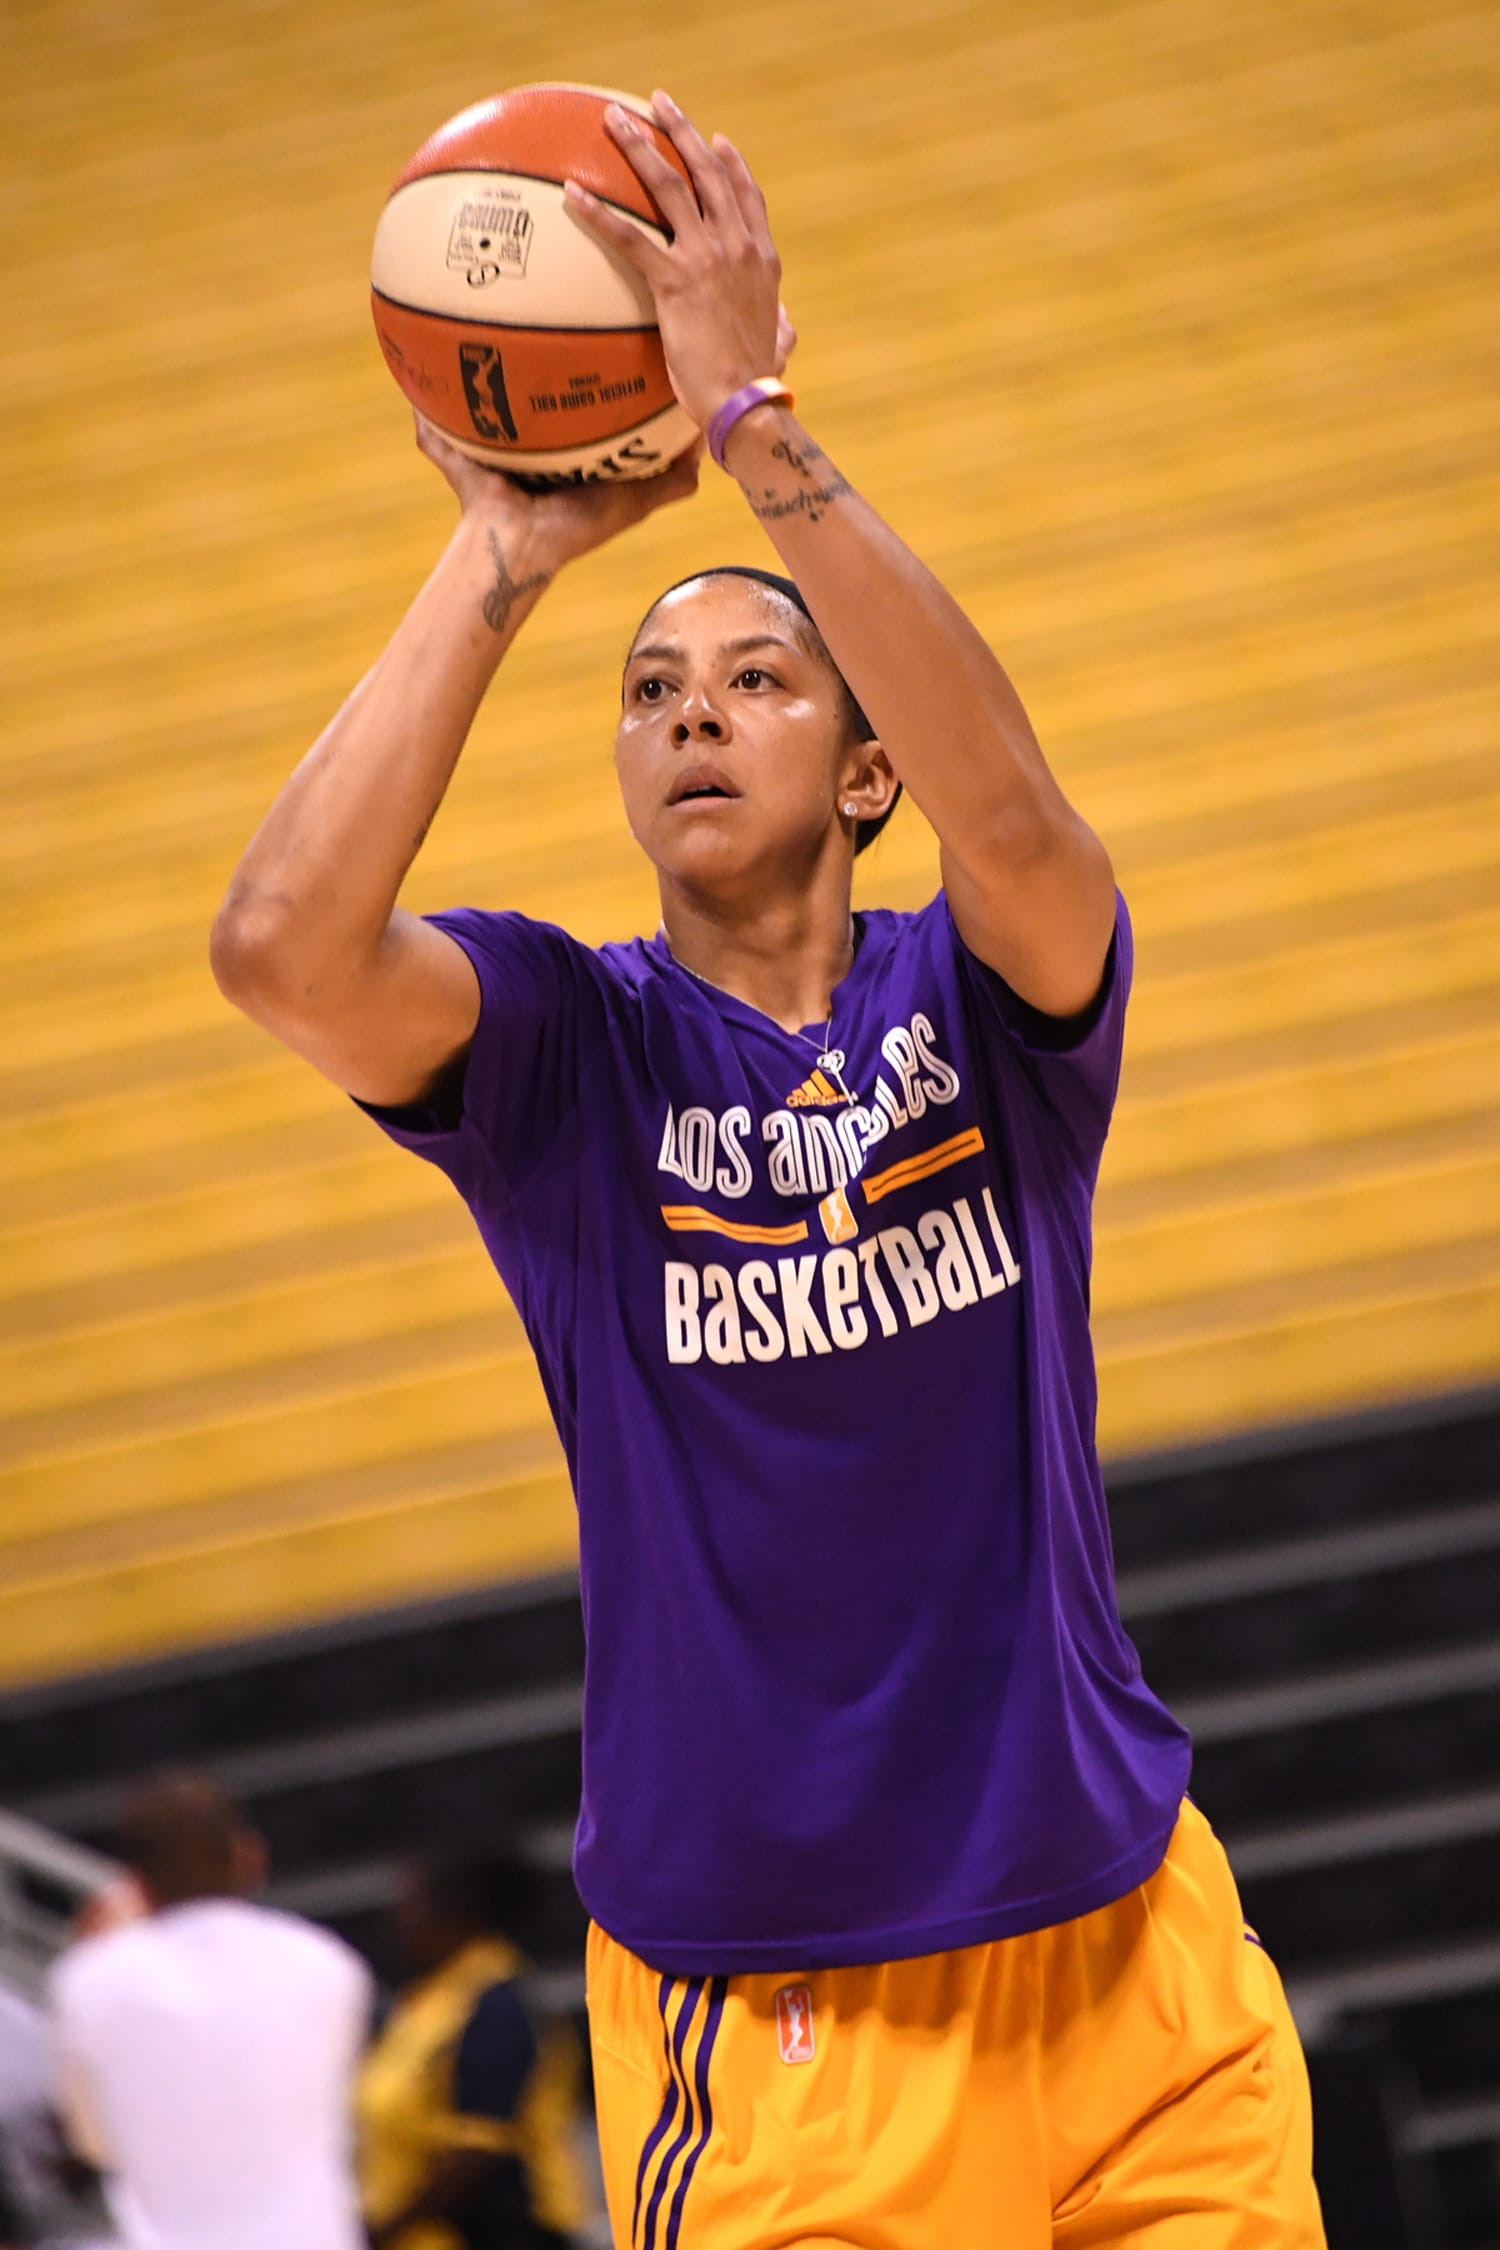 Phoenix Mercury v Los Angeles Sparks Game Two: Pre-game warmups for the LA Sparks